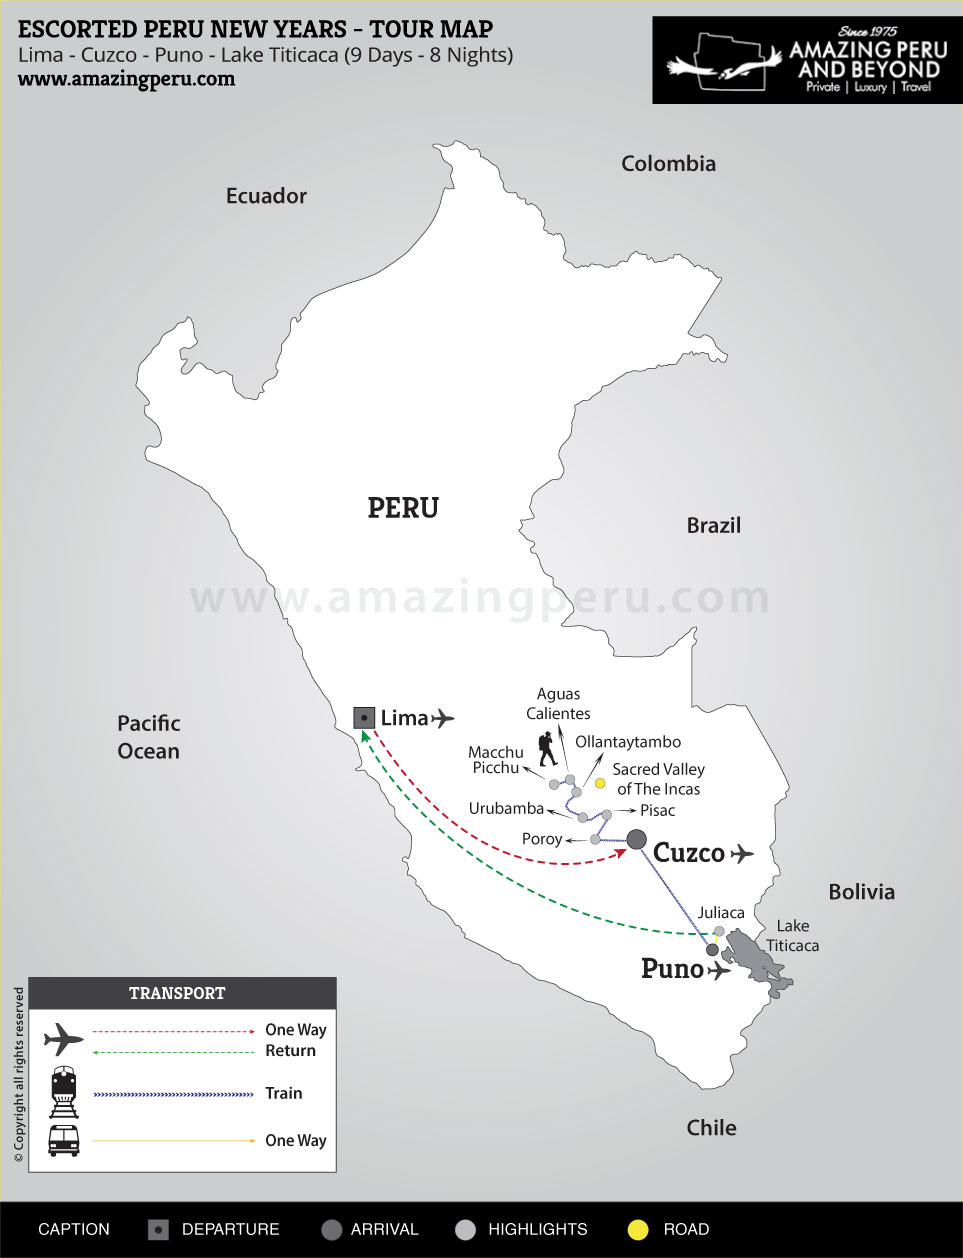 2020-21 Escorted Peru New Years 1 - 9 days / 8 nights.